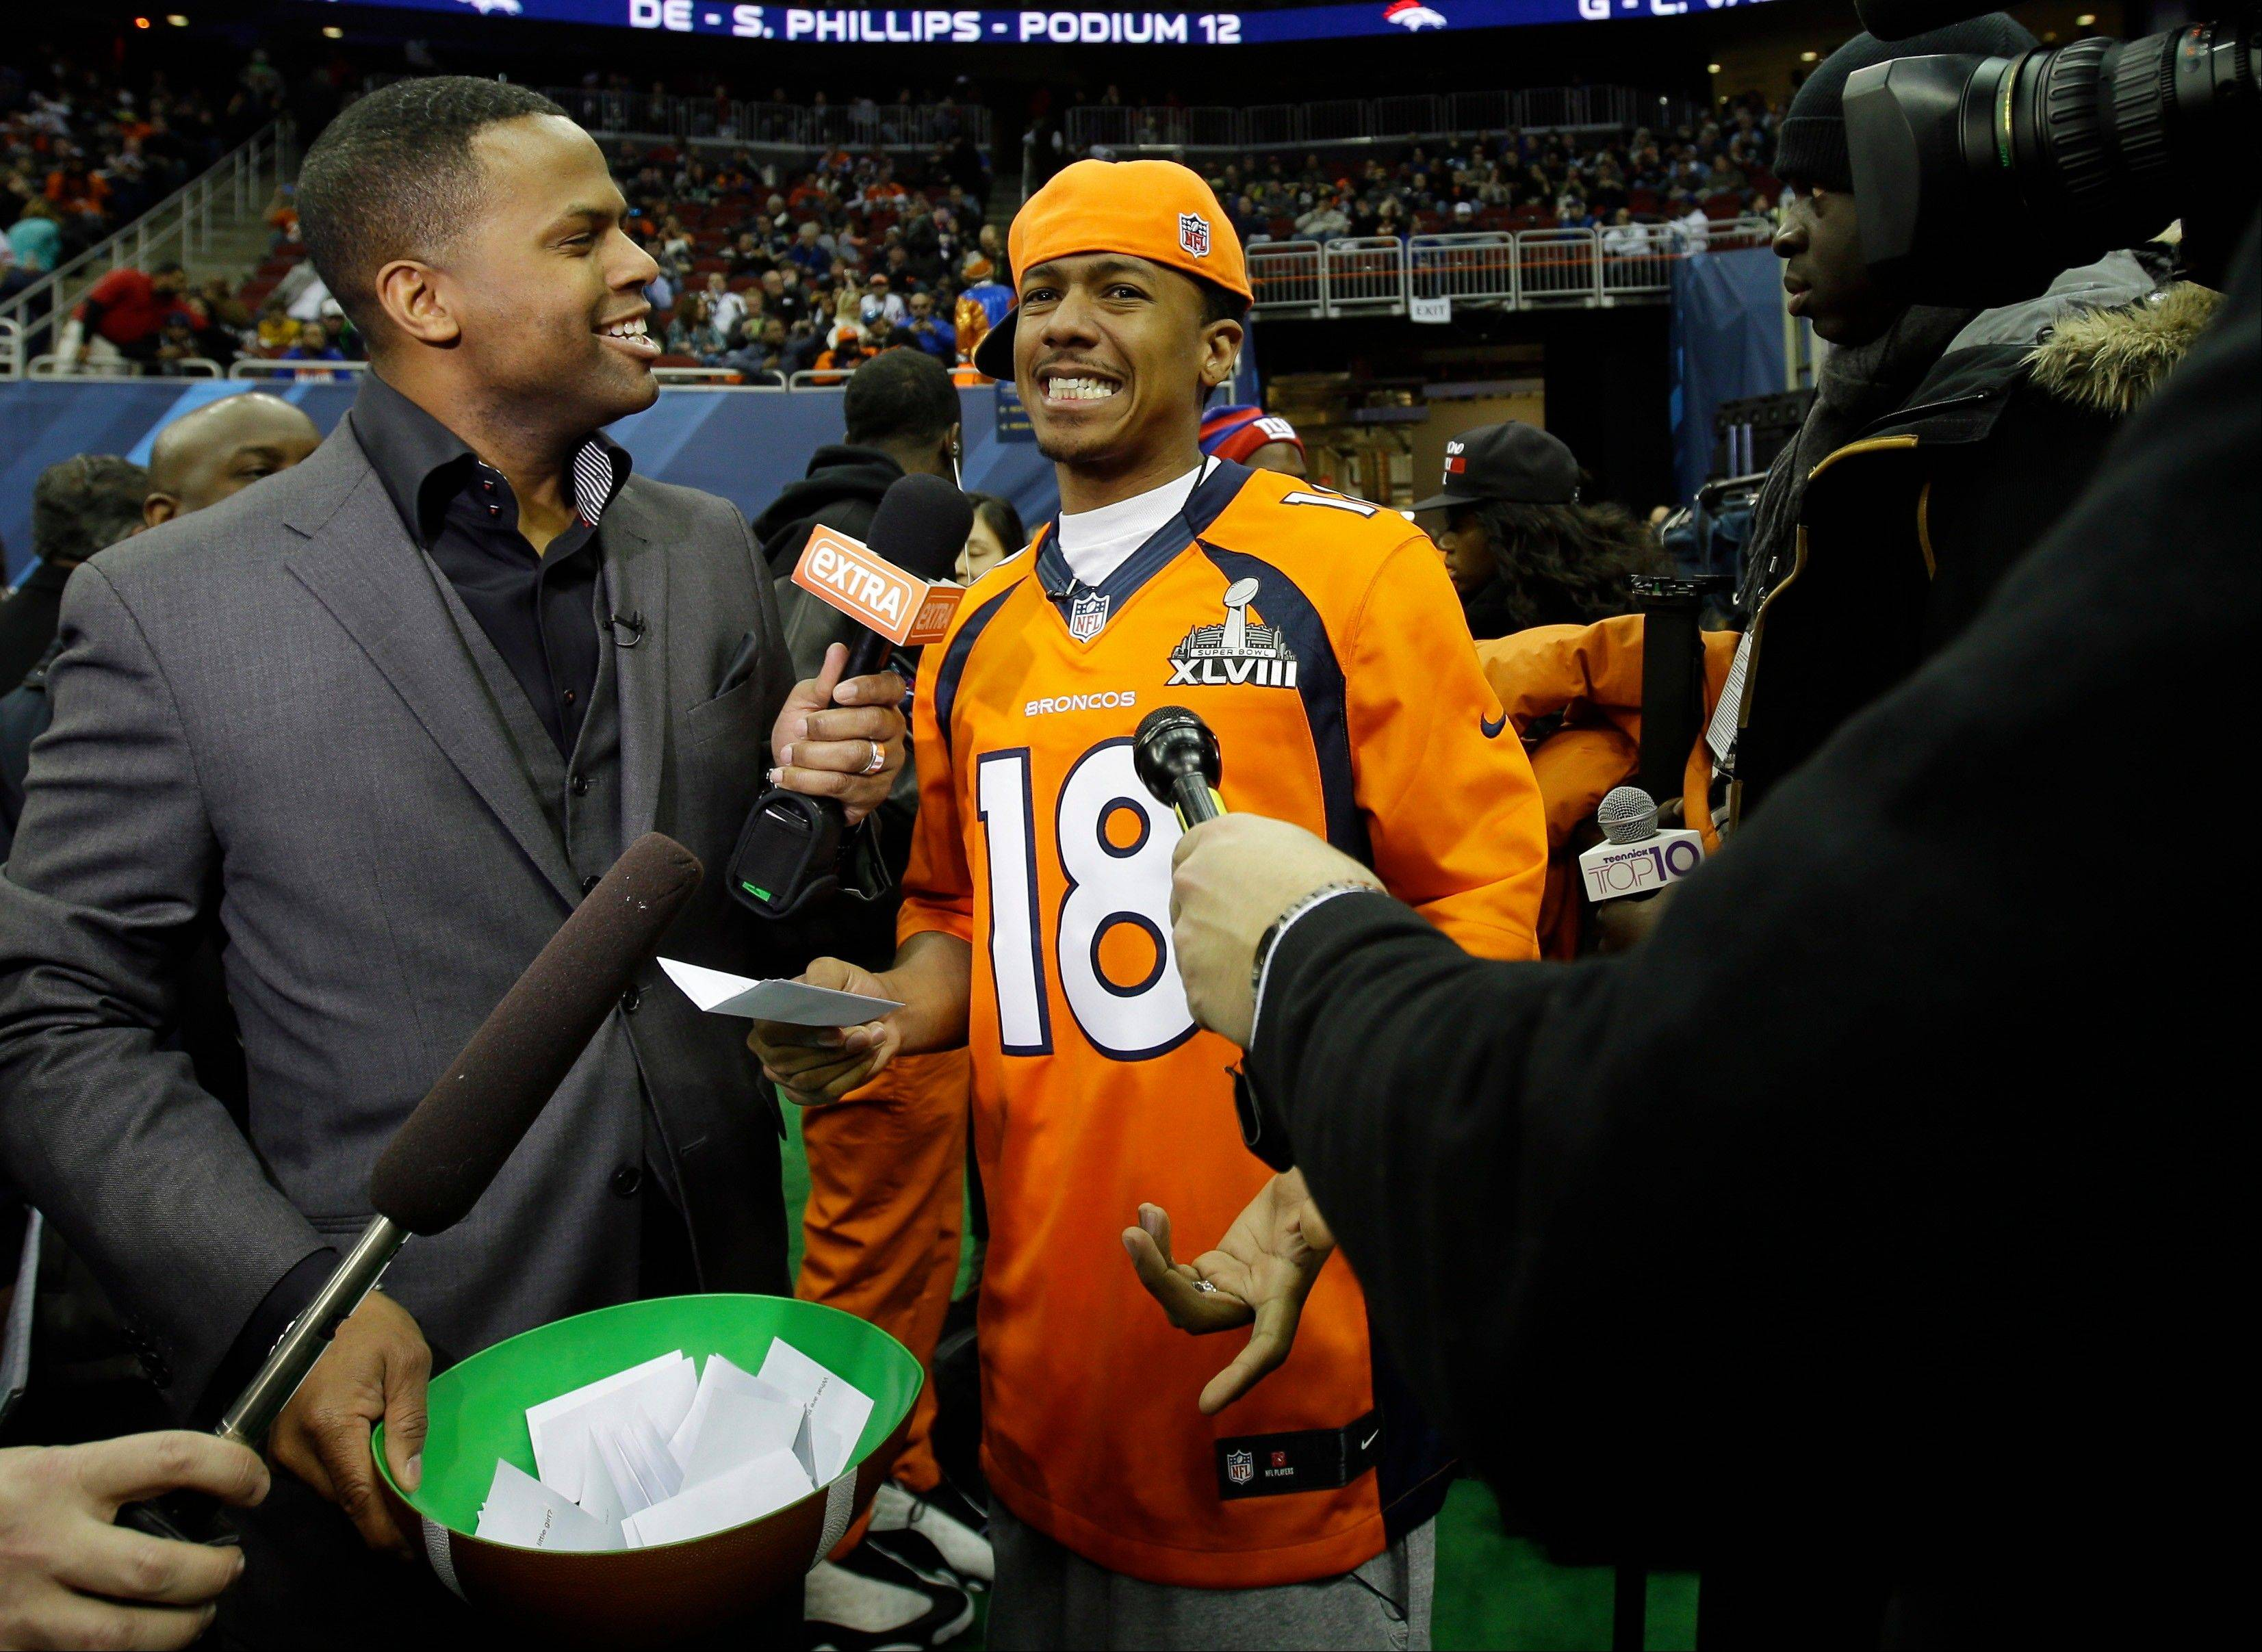 """America's Got Talent"" host Nick Cannon, showing support for the Denver Broncos, is interviewed during media day for the NFL Super Bowl XLVIII football game Tuesday, Jan. 28, 2014, in Newark, N.J."